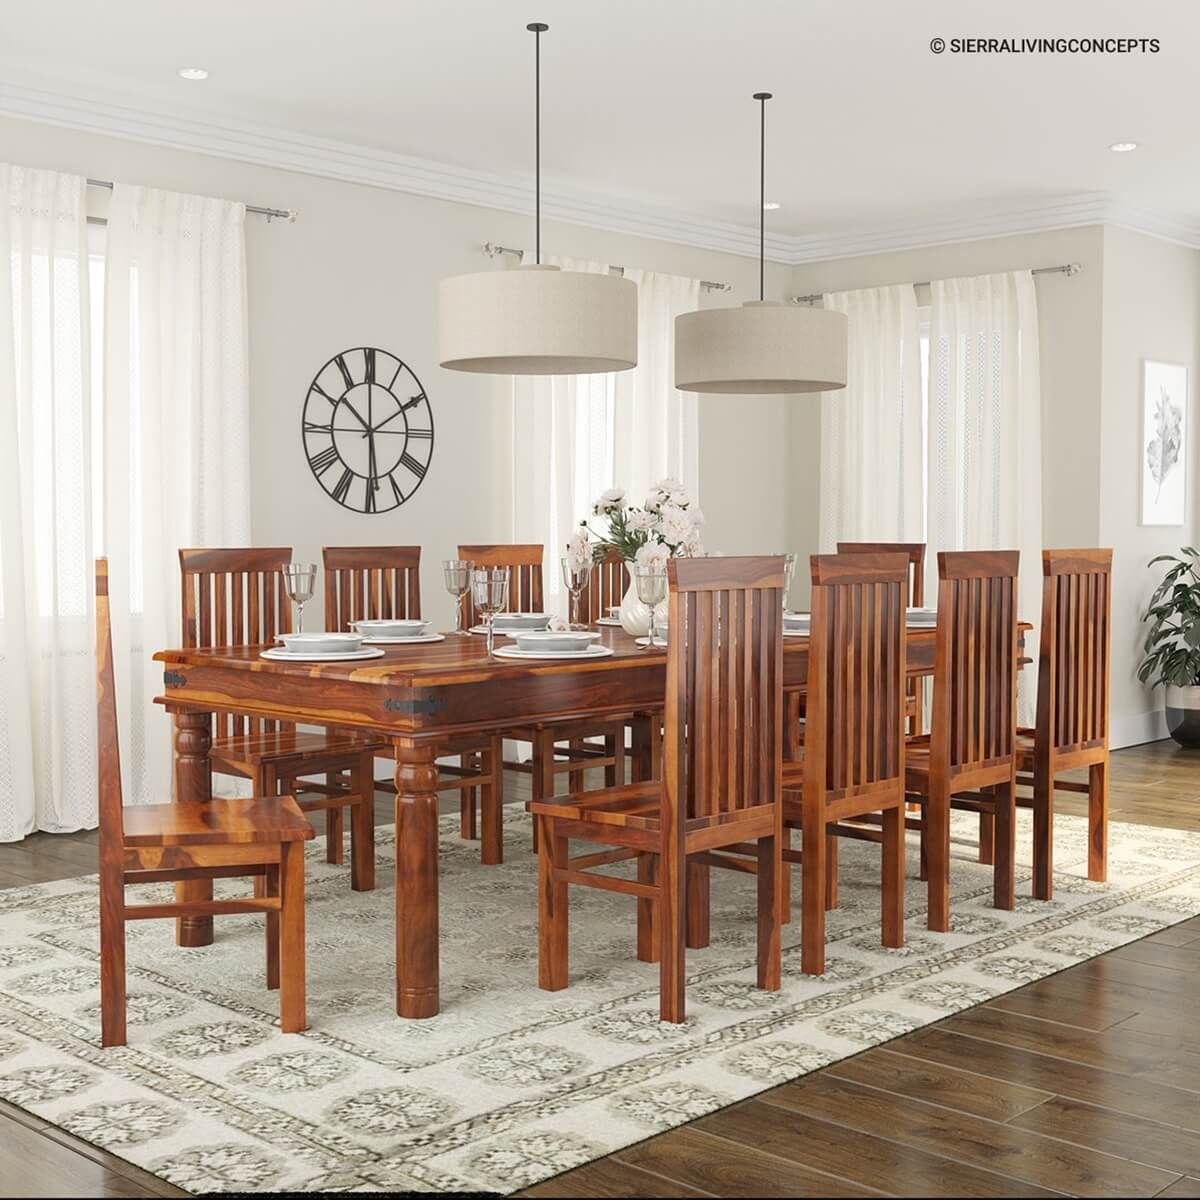 Rustic lincoln study large dining room table chair set for for 10 seater table for sale